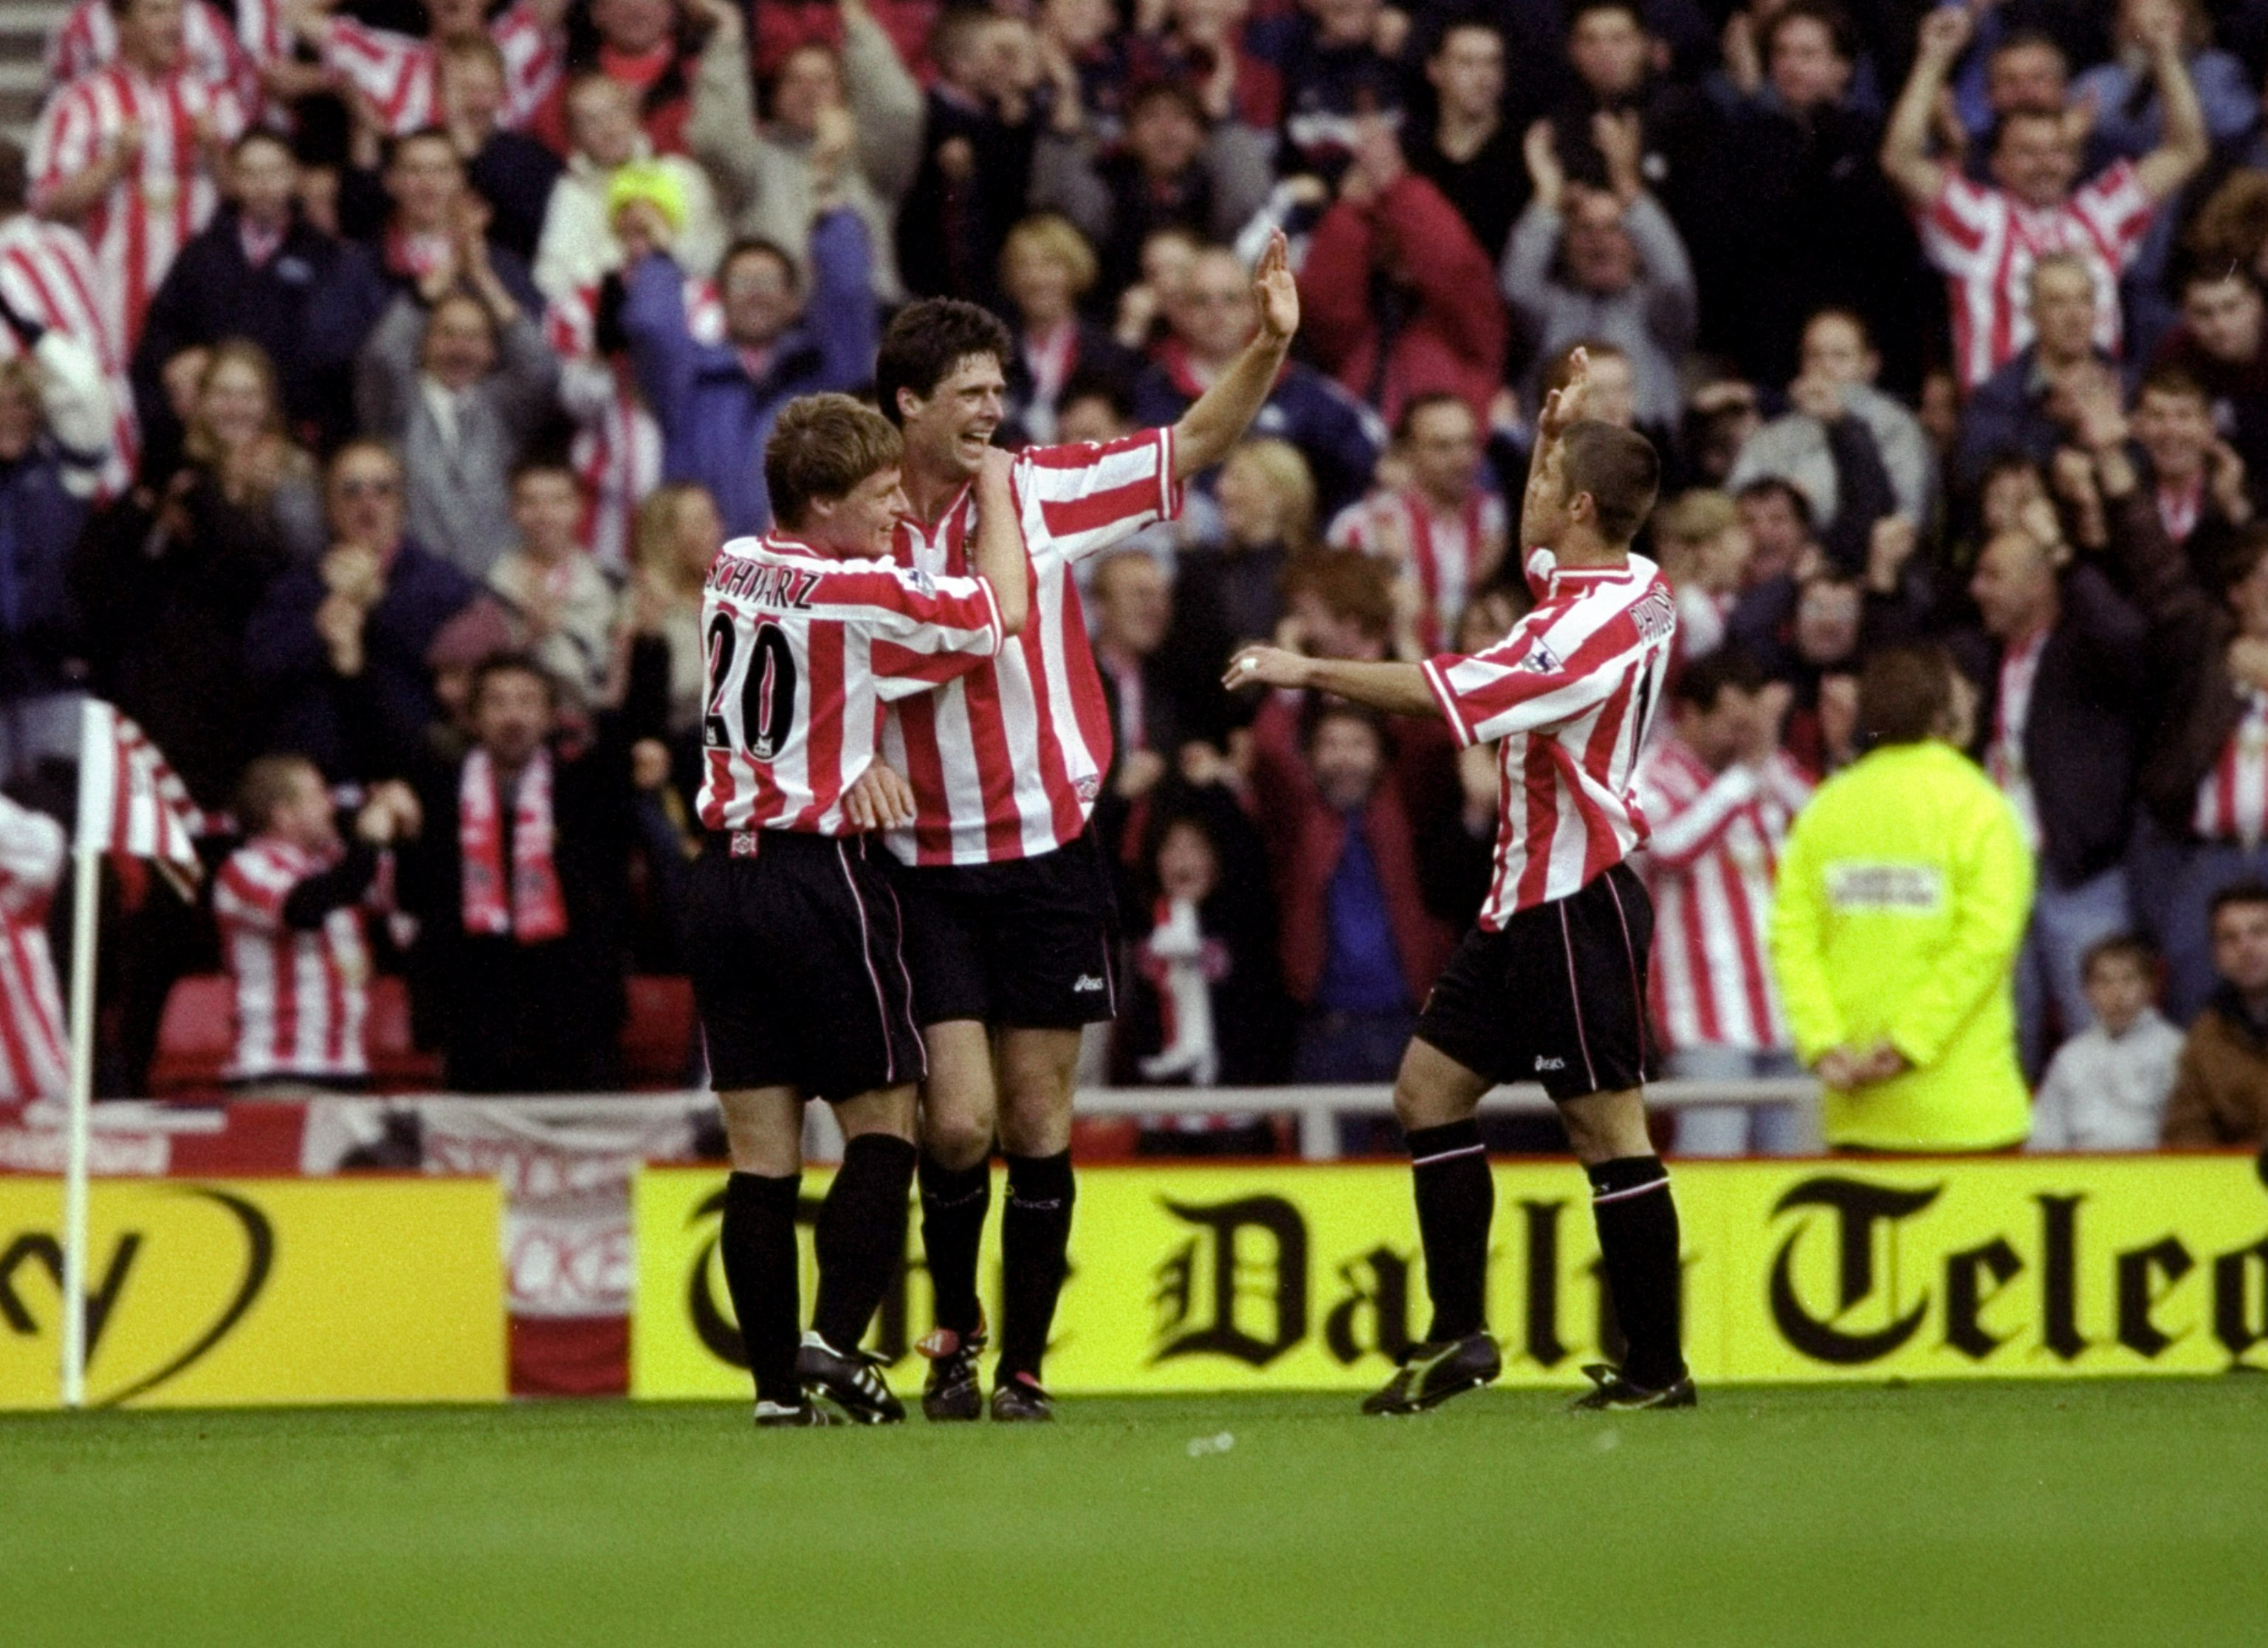 31 Oct 1999:  Niall Quinn of Sunderland celebrates his goal against Tottenham Hotspur with team mates Stefan Schwarz and Kevin Phillips during the FA Carling Premiership match at the Stadium of Light in Sunderland, England. Sunderland won 2-1. \ Mandatory